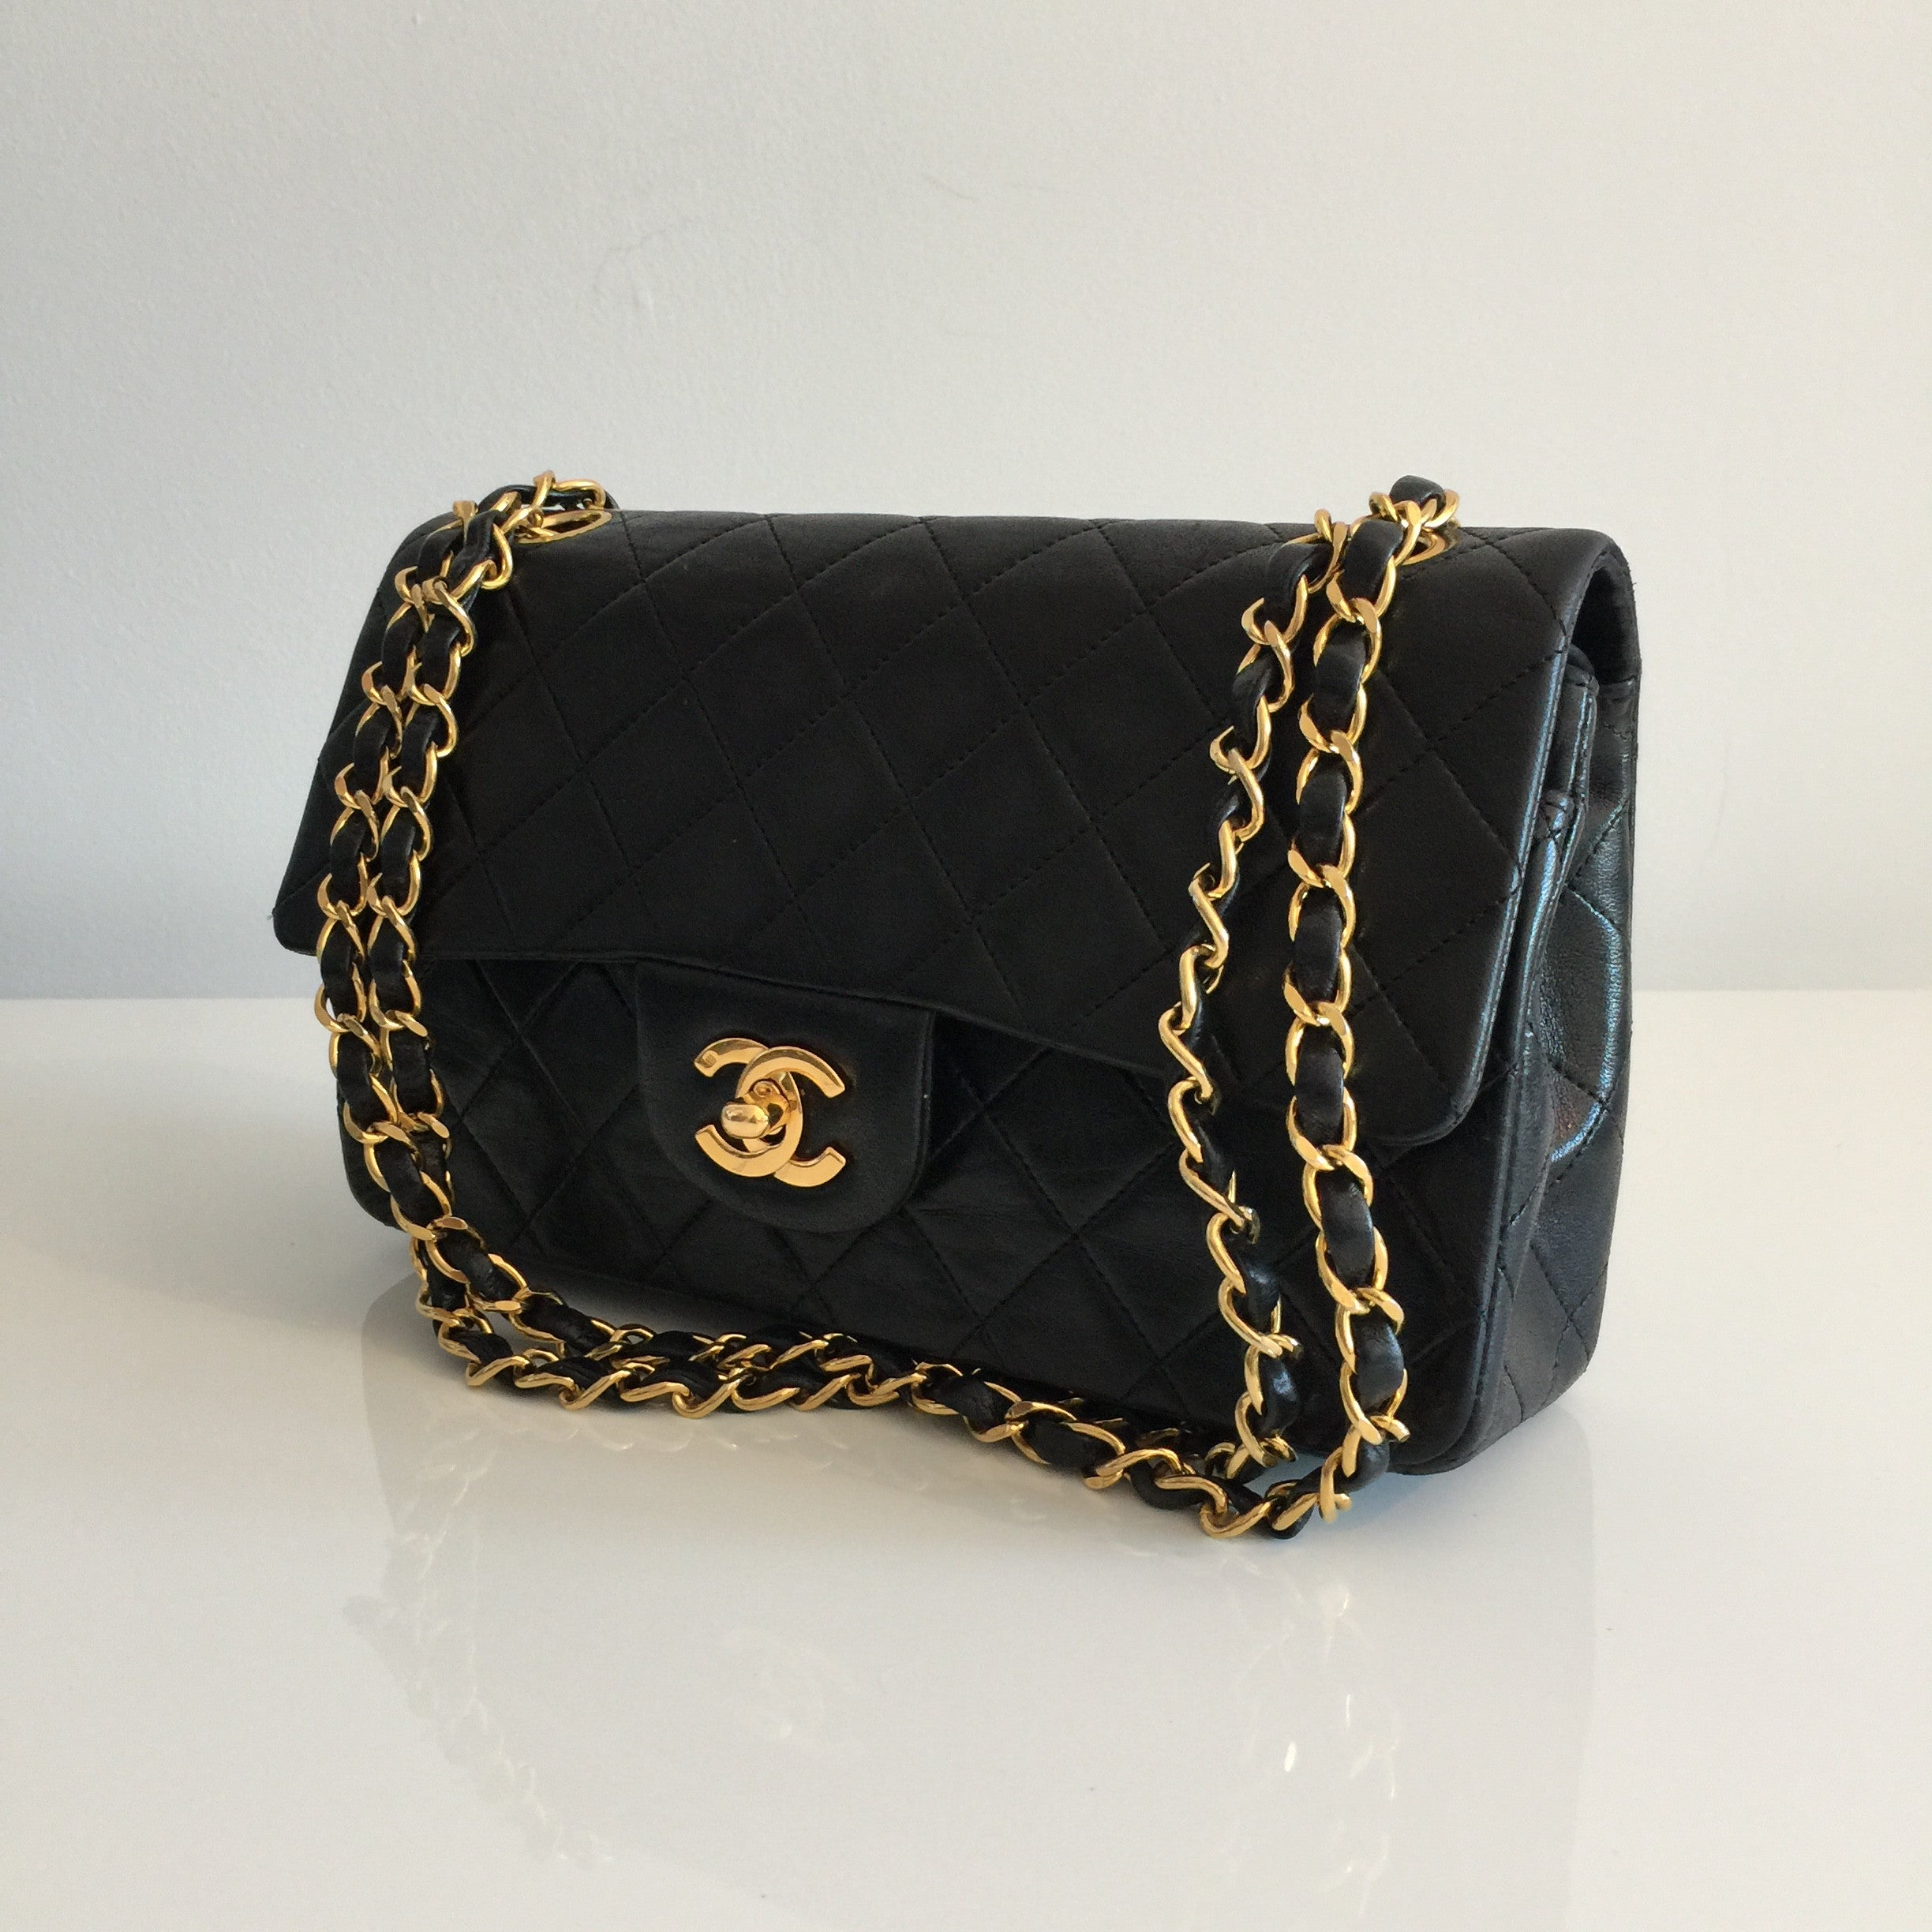 "Authentic CHANEL Vintage 9"" Double Flap"